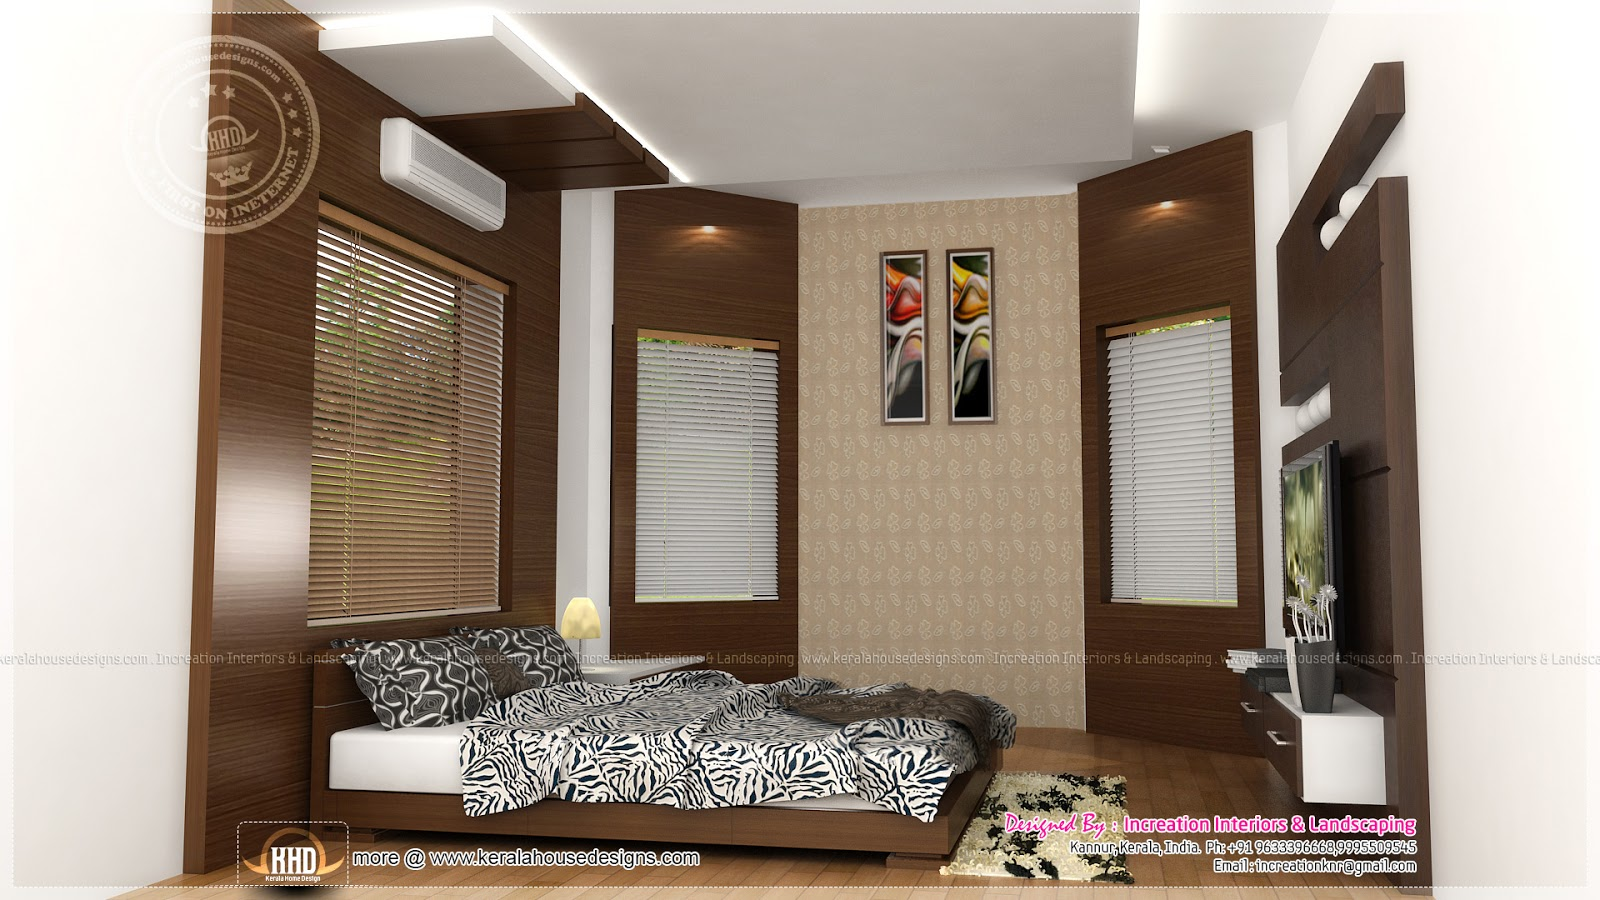 Small Home Interior Design Ideas: Interior Designs By Increation, Kannur, Kerala